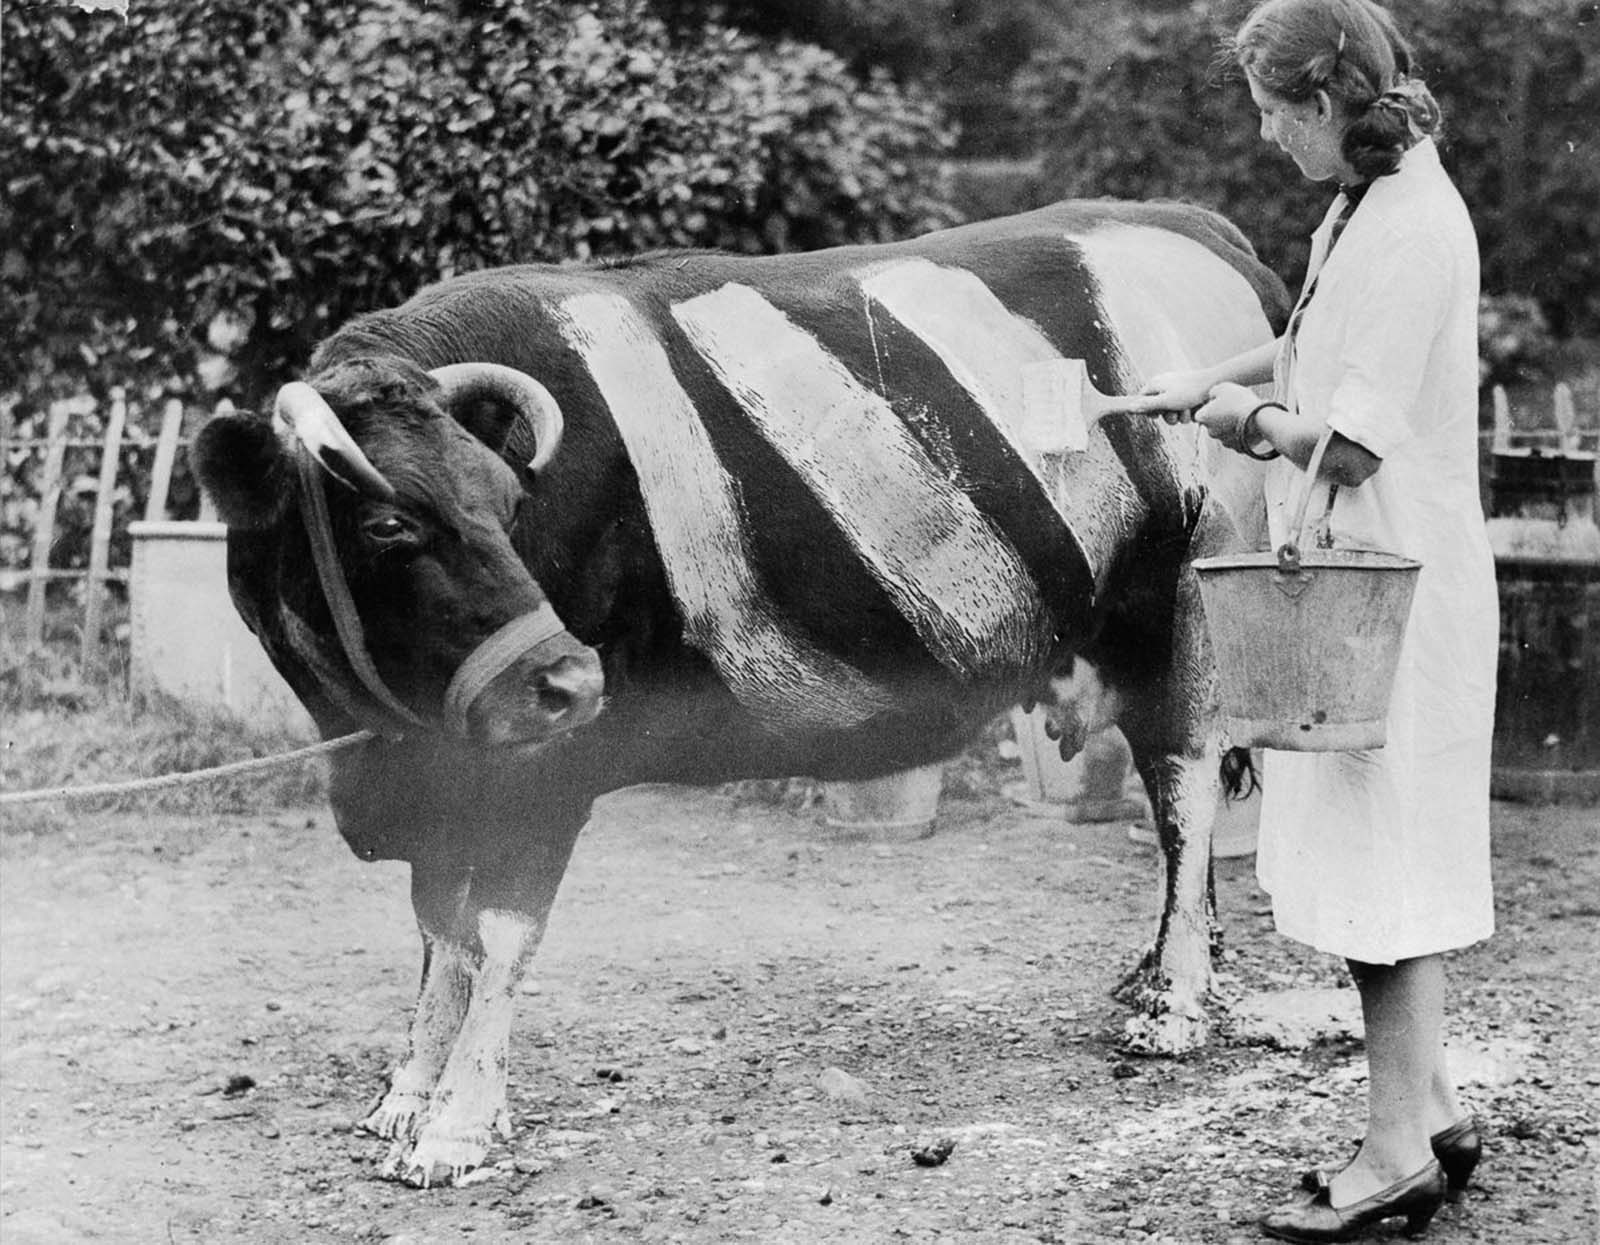 A farmer paints stripes on her cow to increase its visibility at night and prevent car accidents should it wander onto the road during blackout conditions.